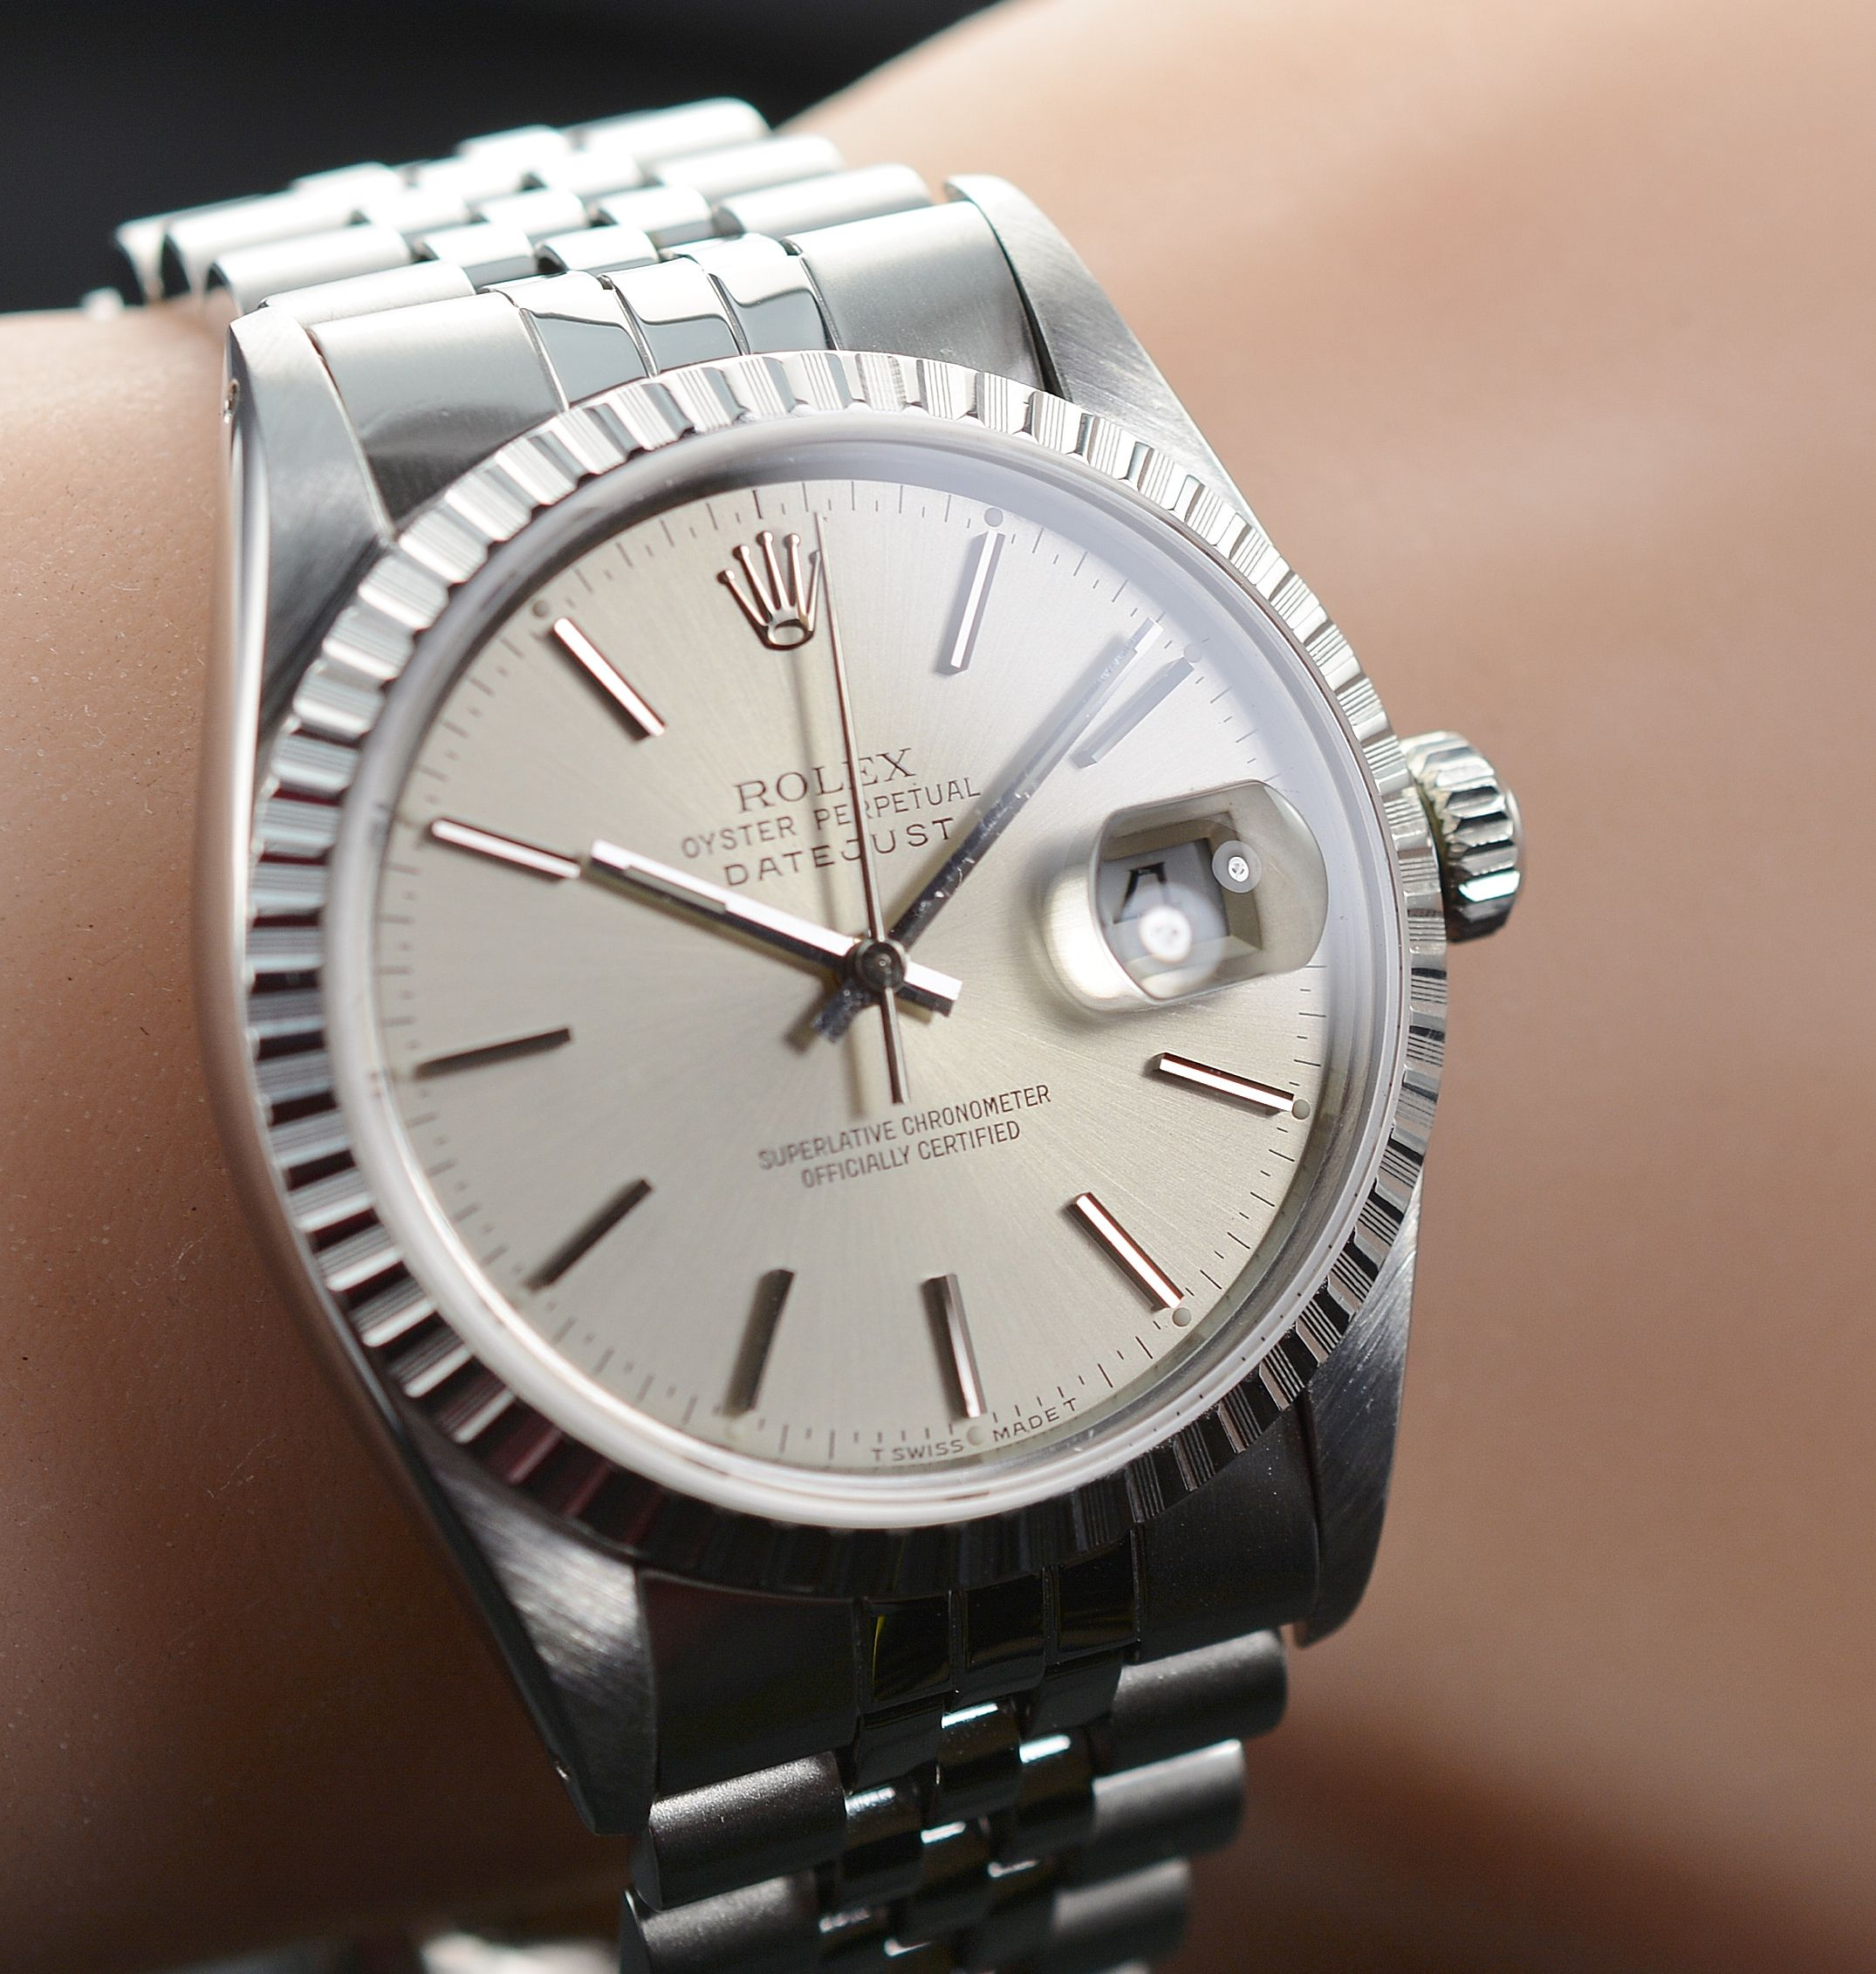 Vintage Rolex Datejust 36MM Stainless Steel Watch Circa ...Rolex Datejust 36mm On Wrist